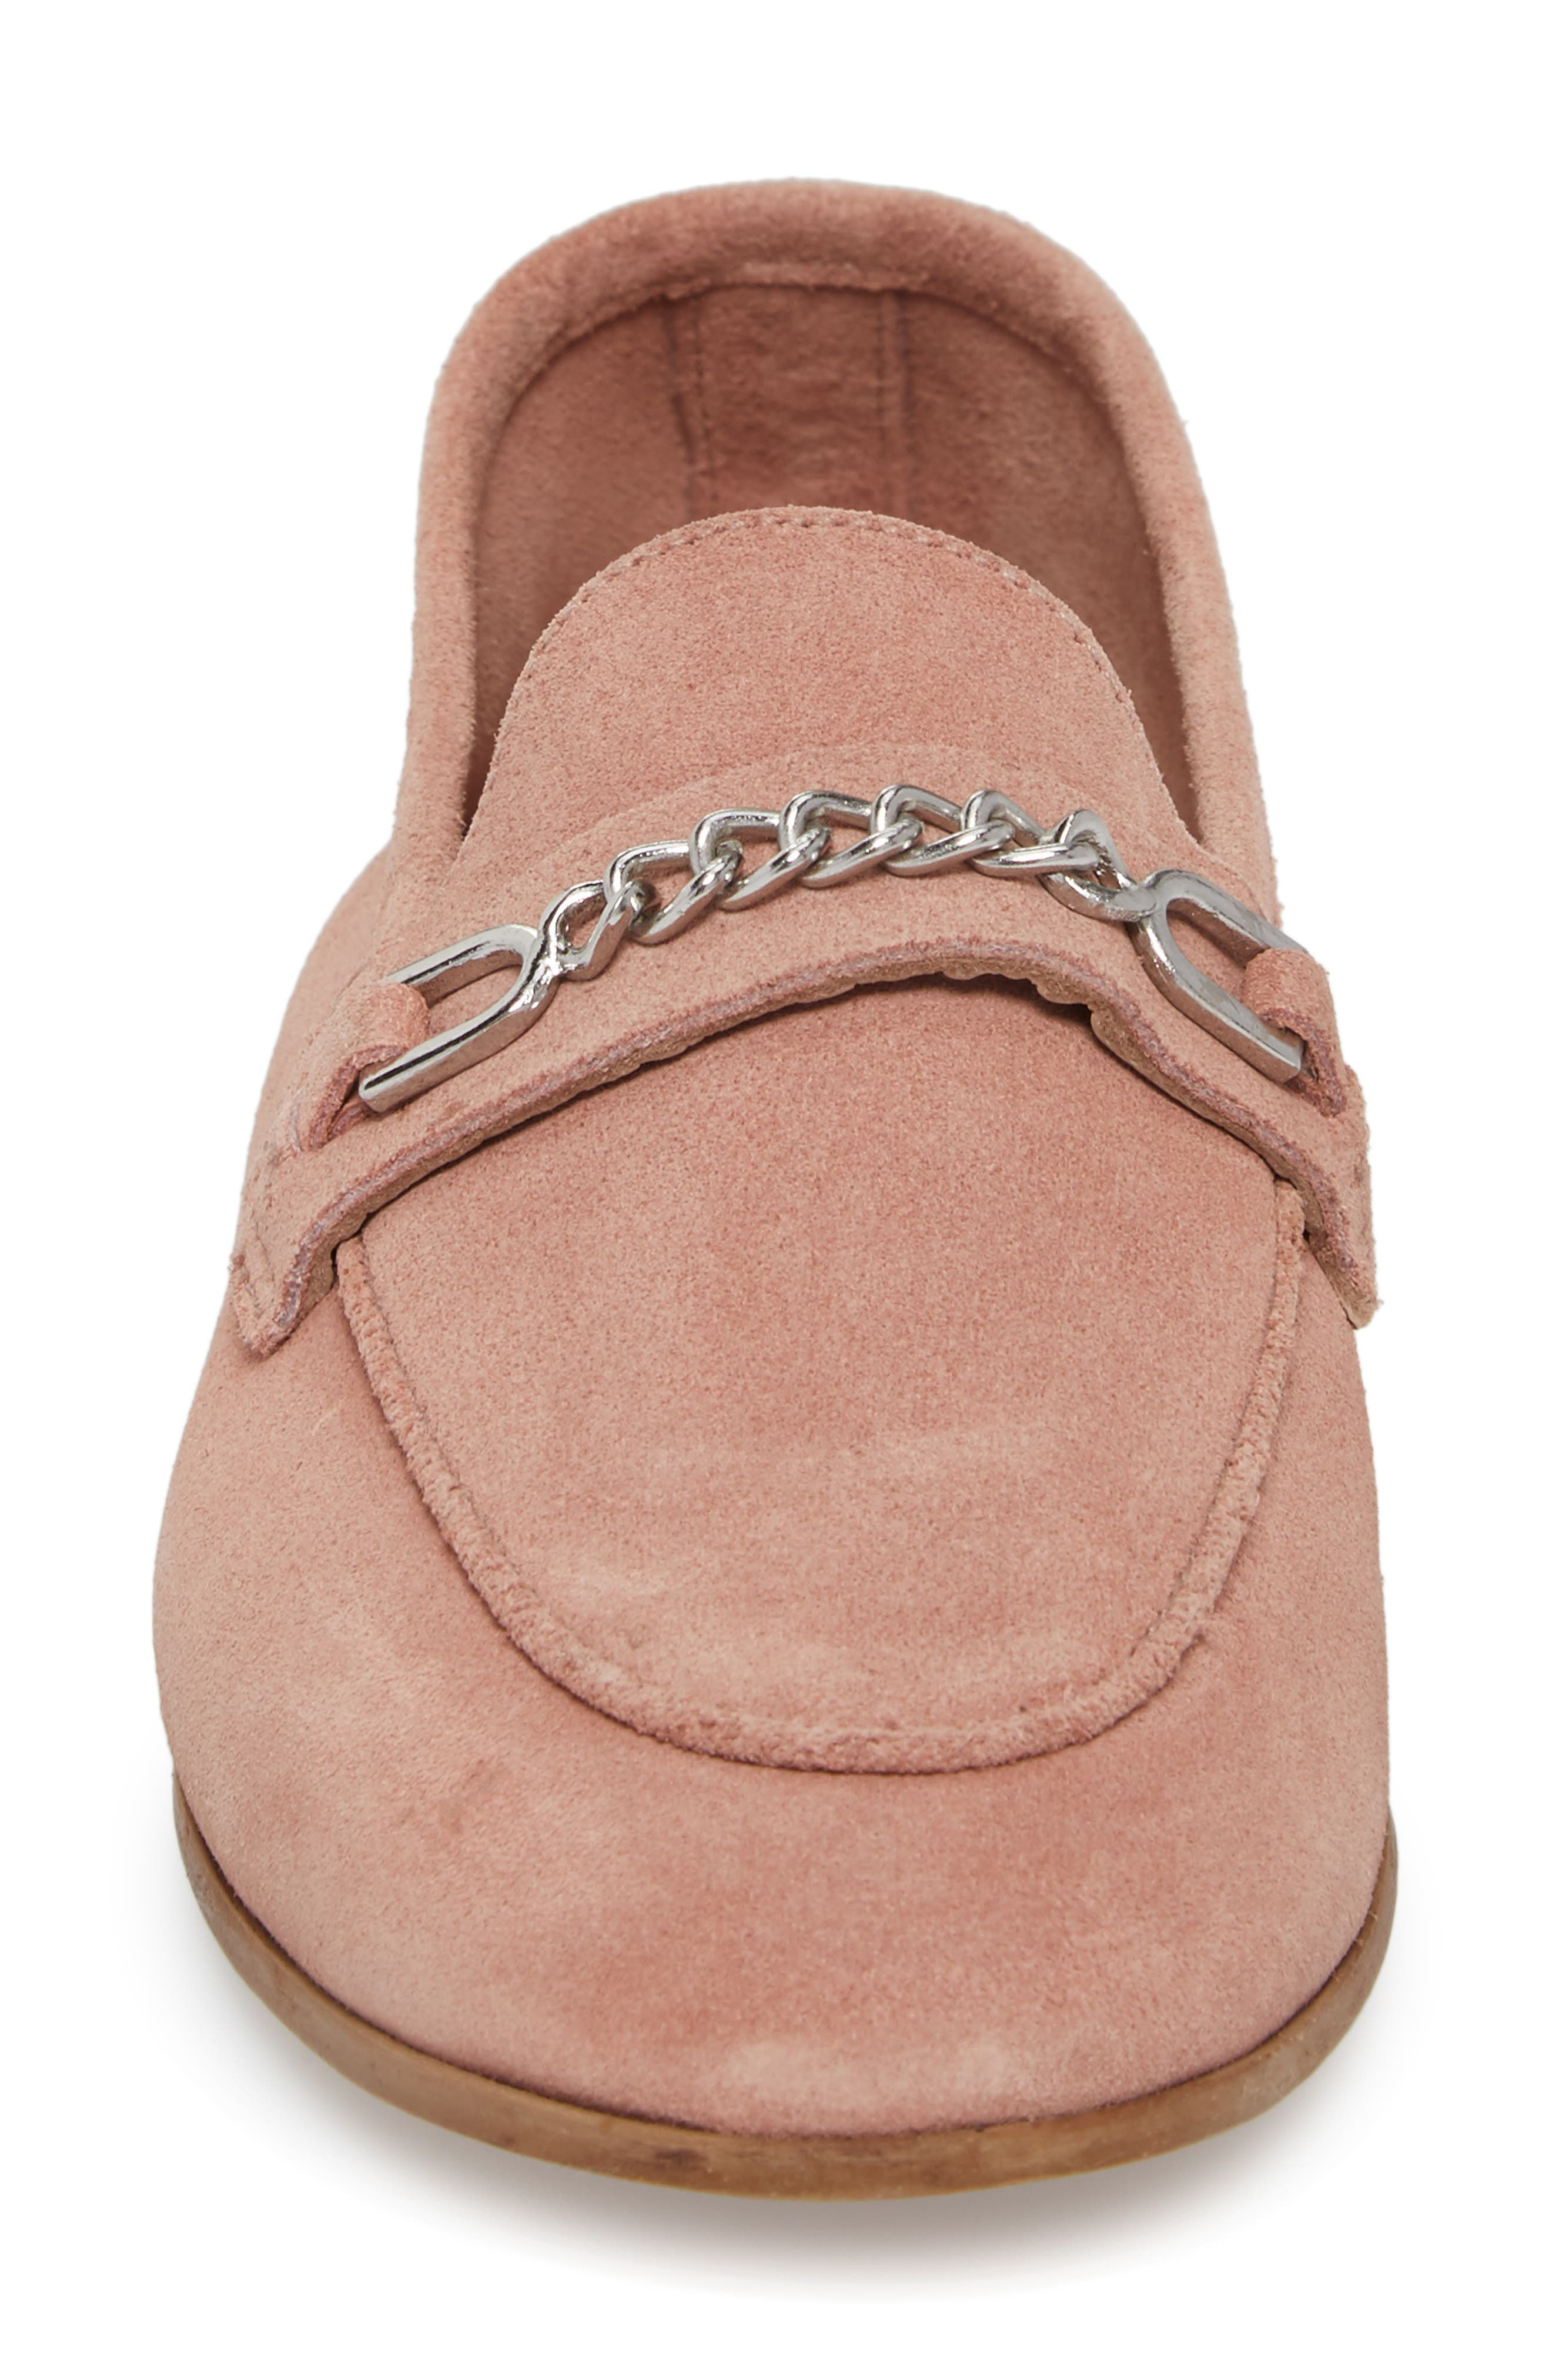 Key Trim Chain Loafer,                             Alternate thumbnail 4, color,                             Pink Multi